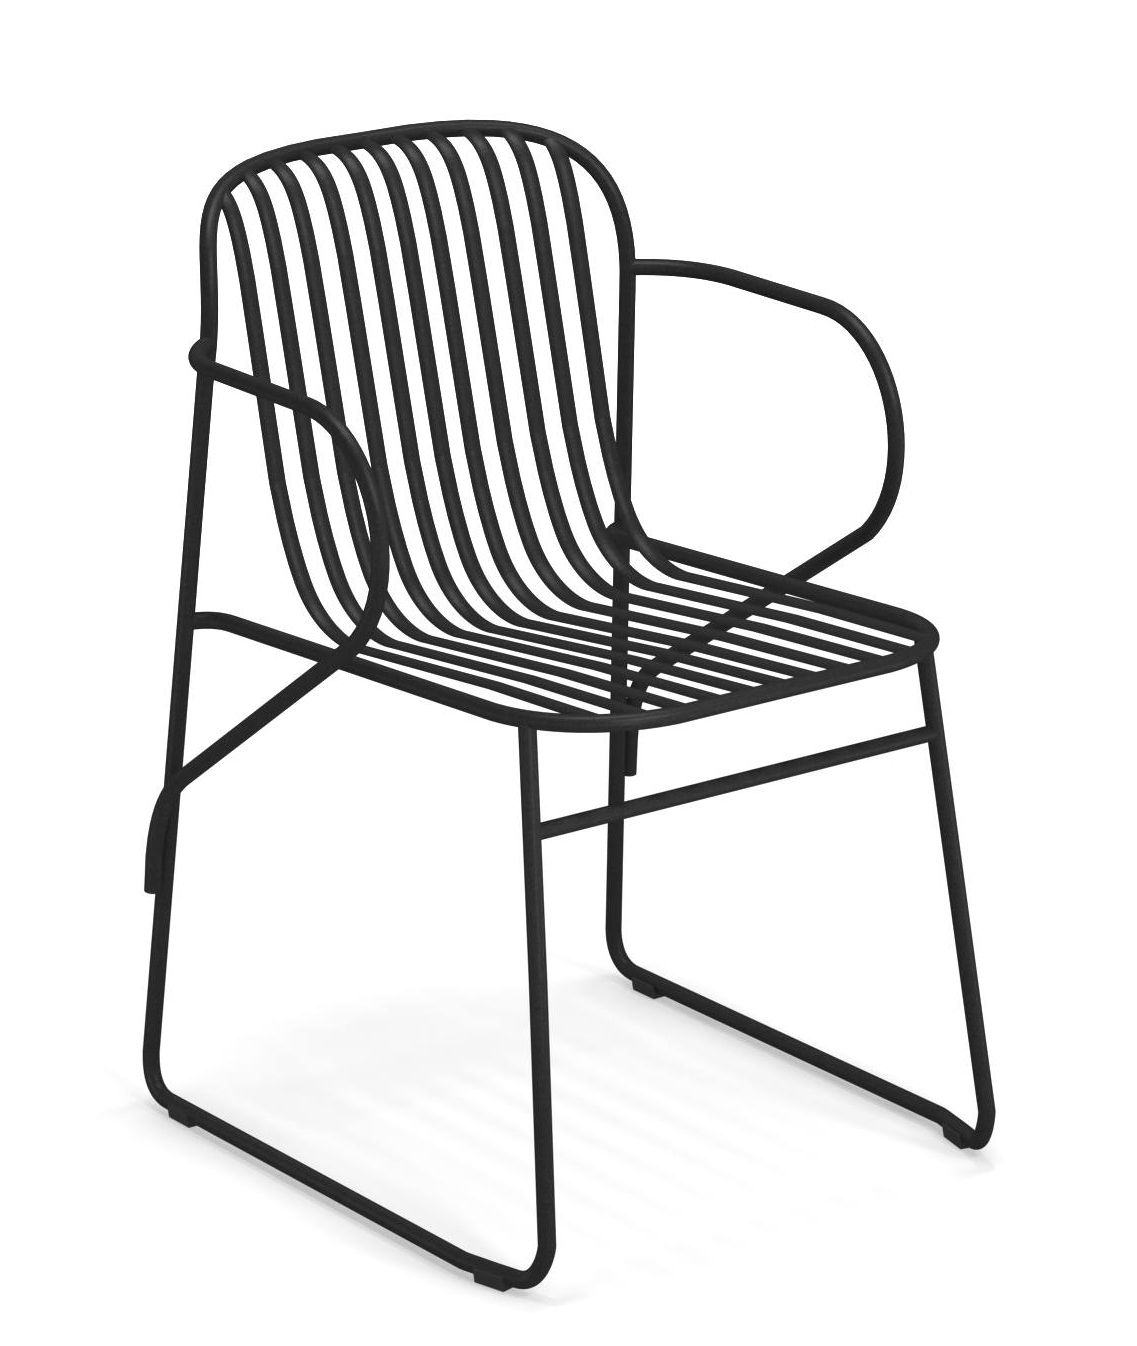 Furniture - Chairs - Riviera Stackable armchair - / Metal by Emu - Black - Varnished steel